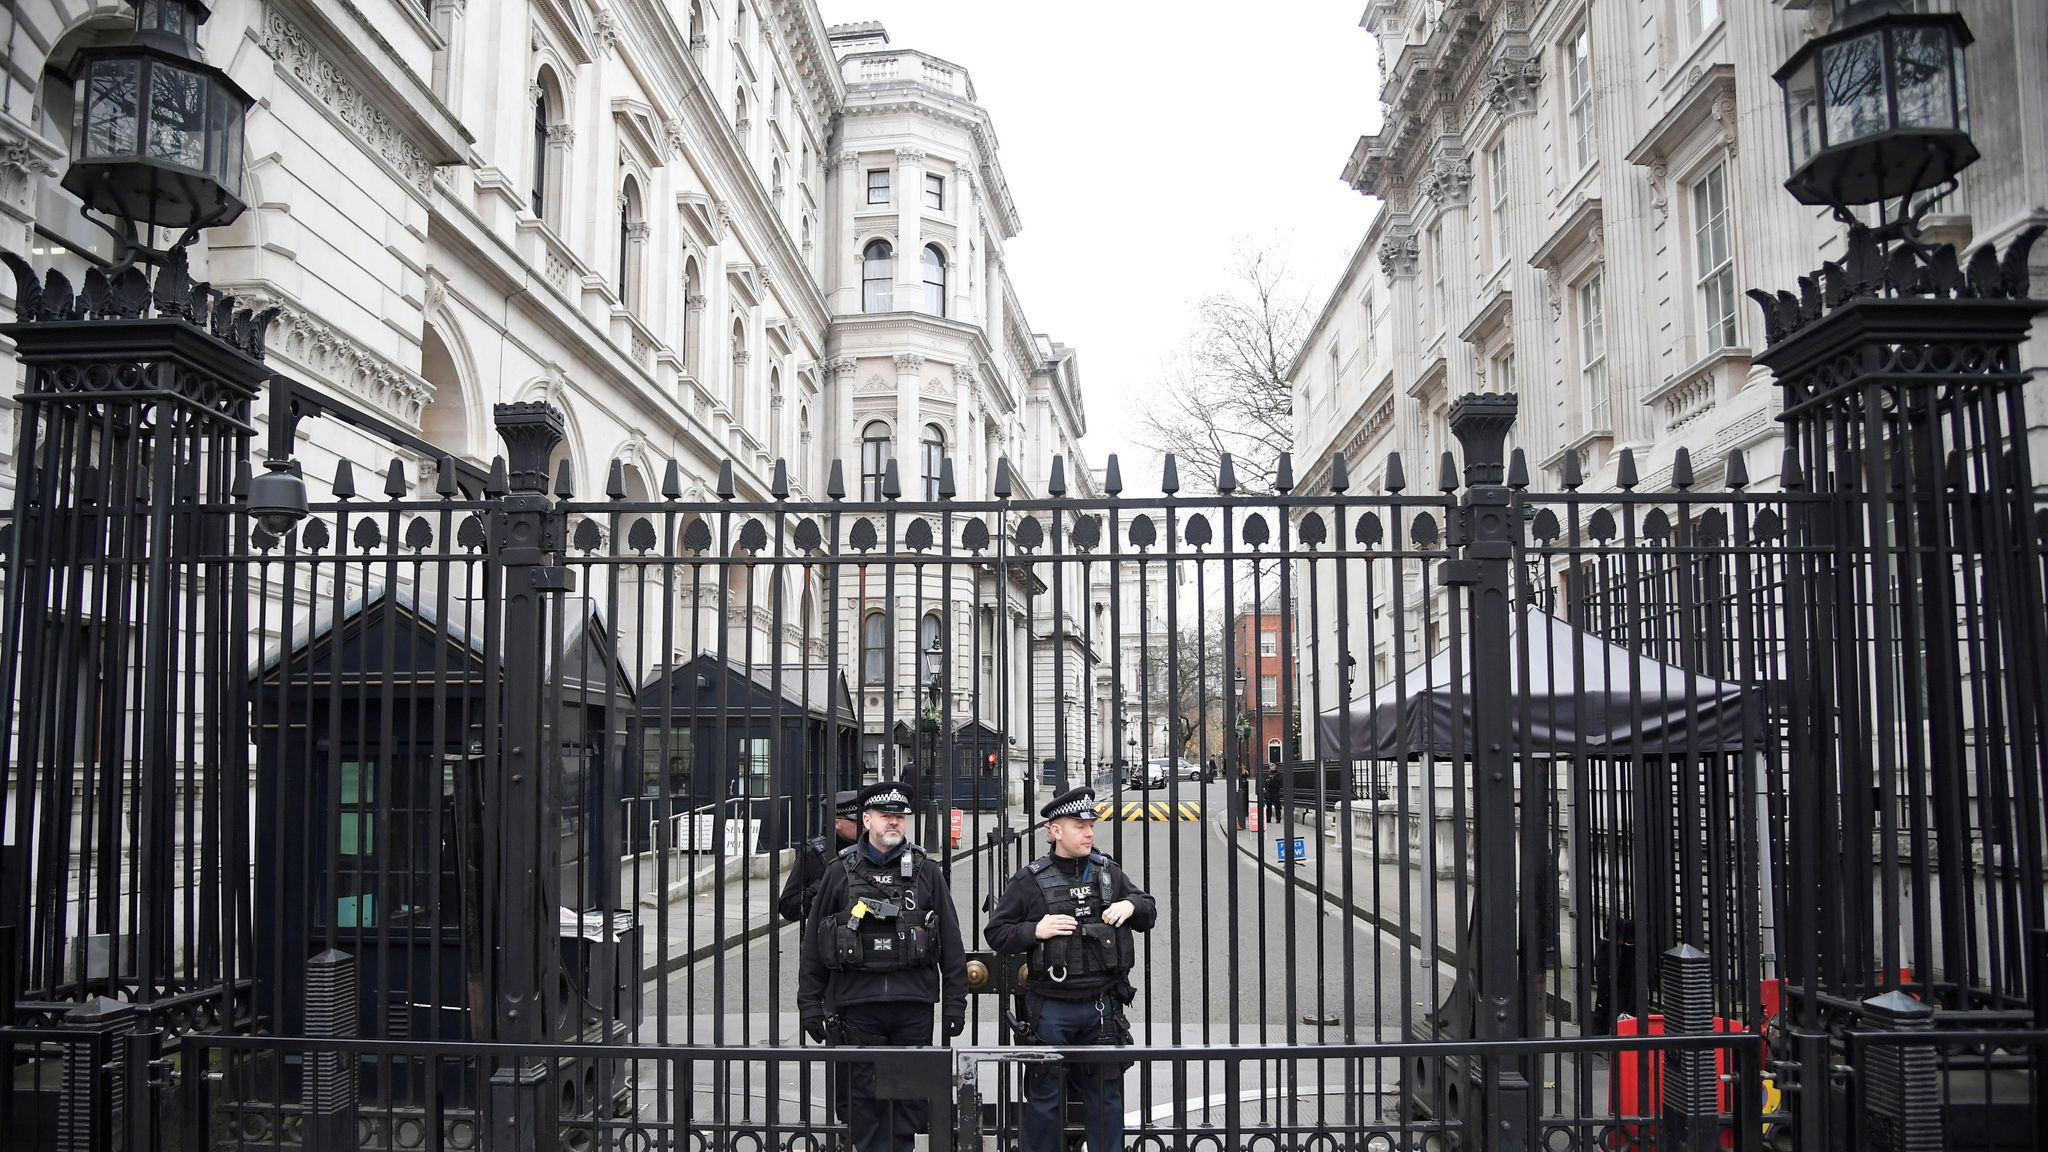 Armed police officers stand guard at the gates of Downing Street